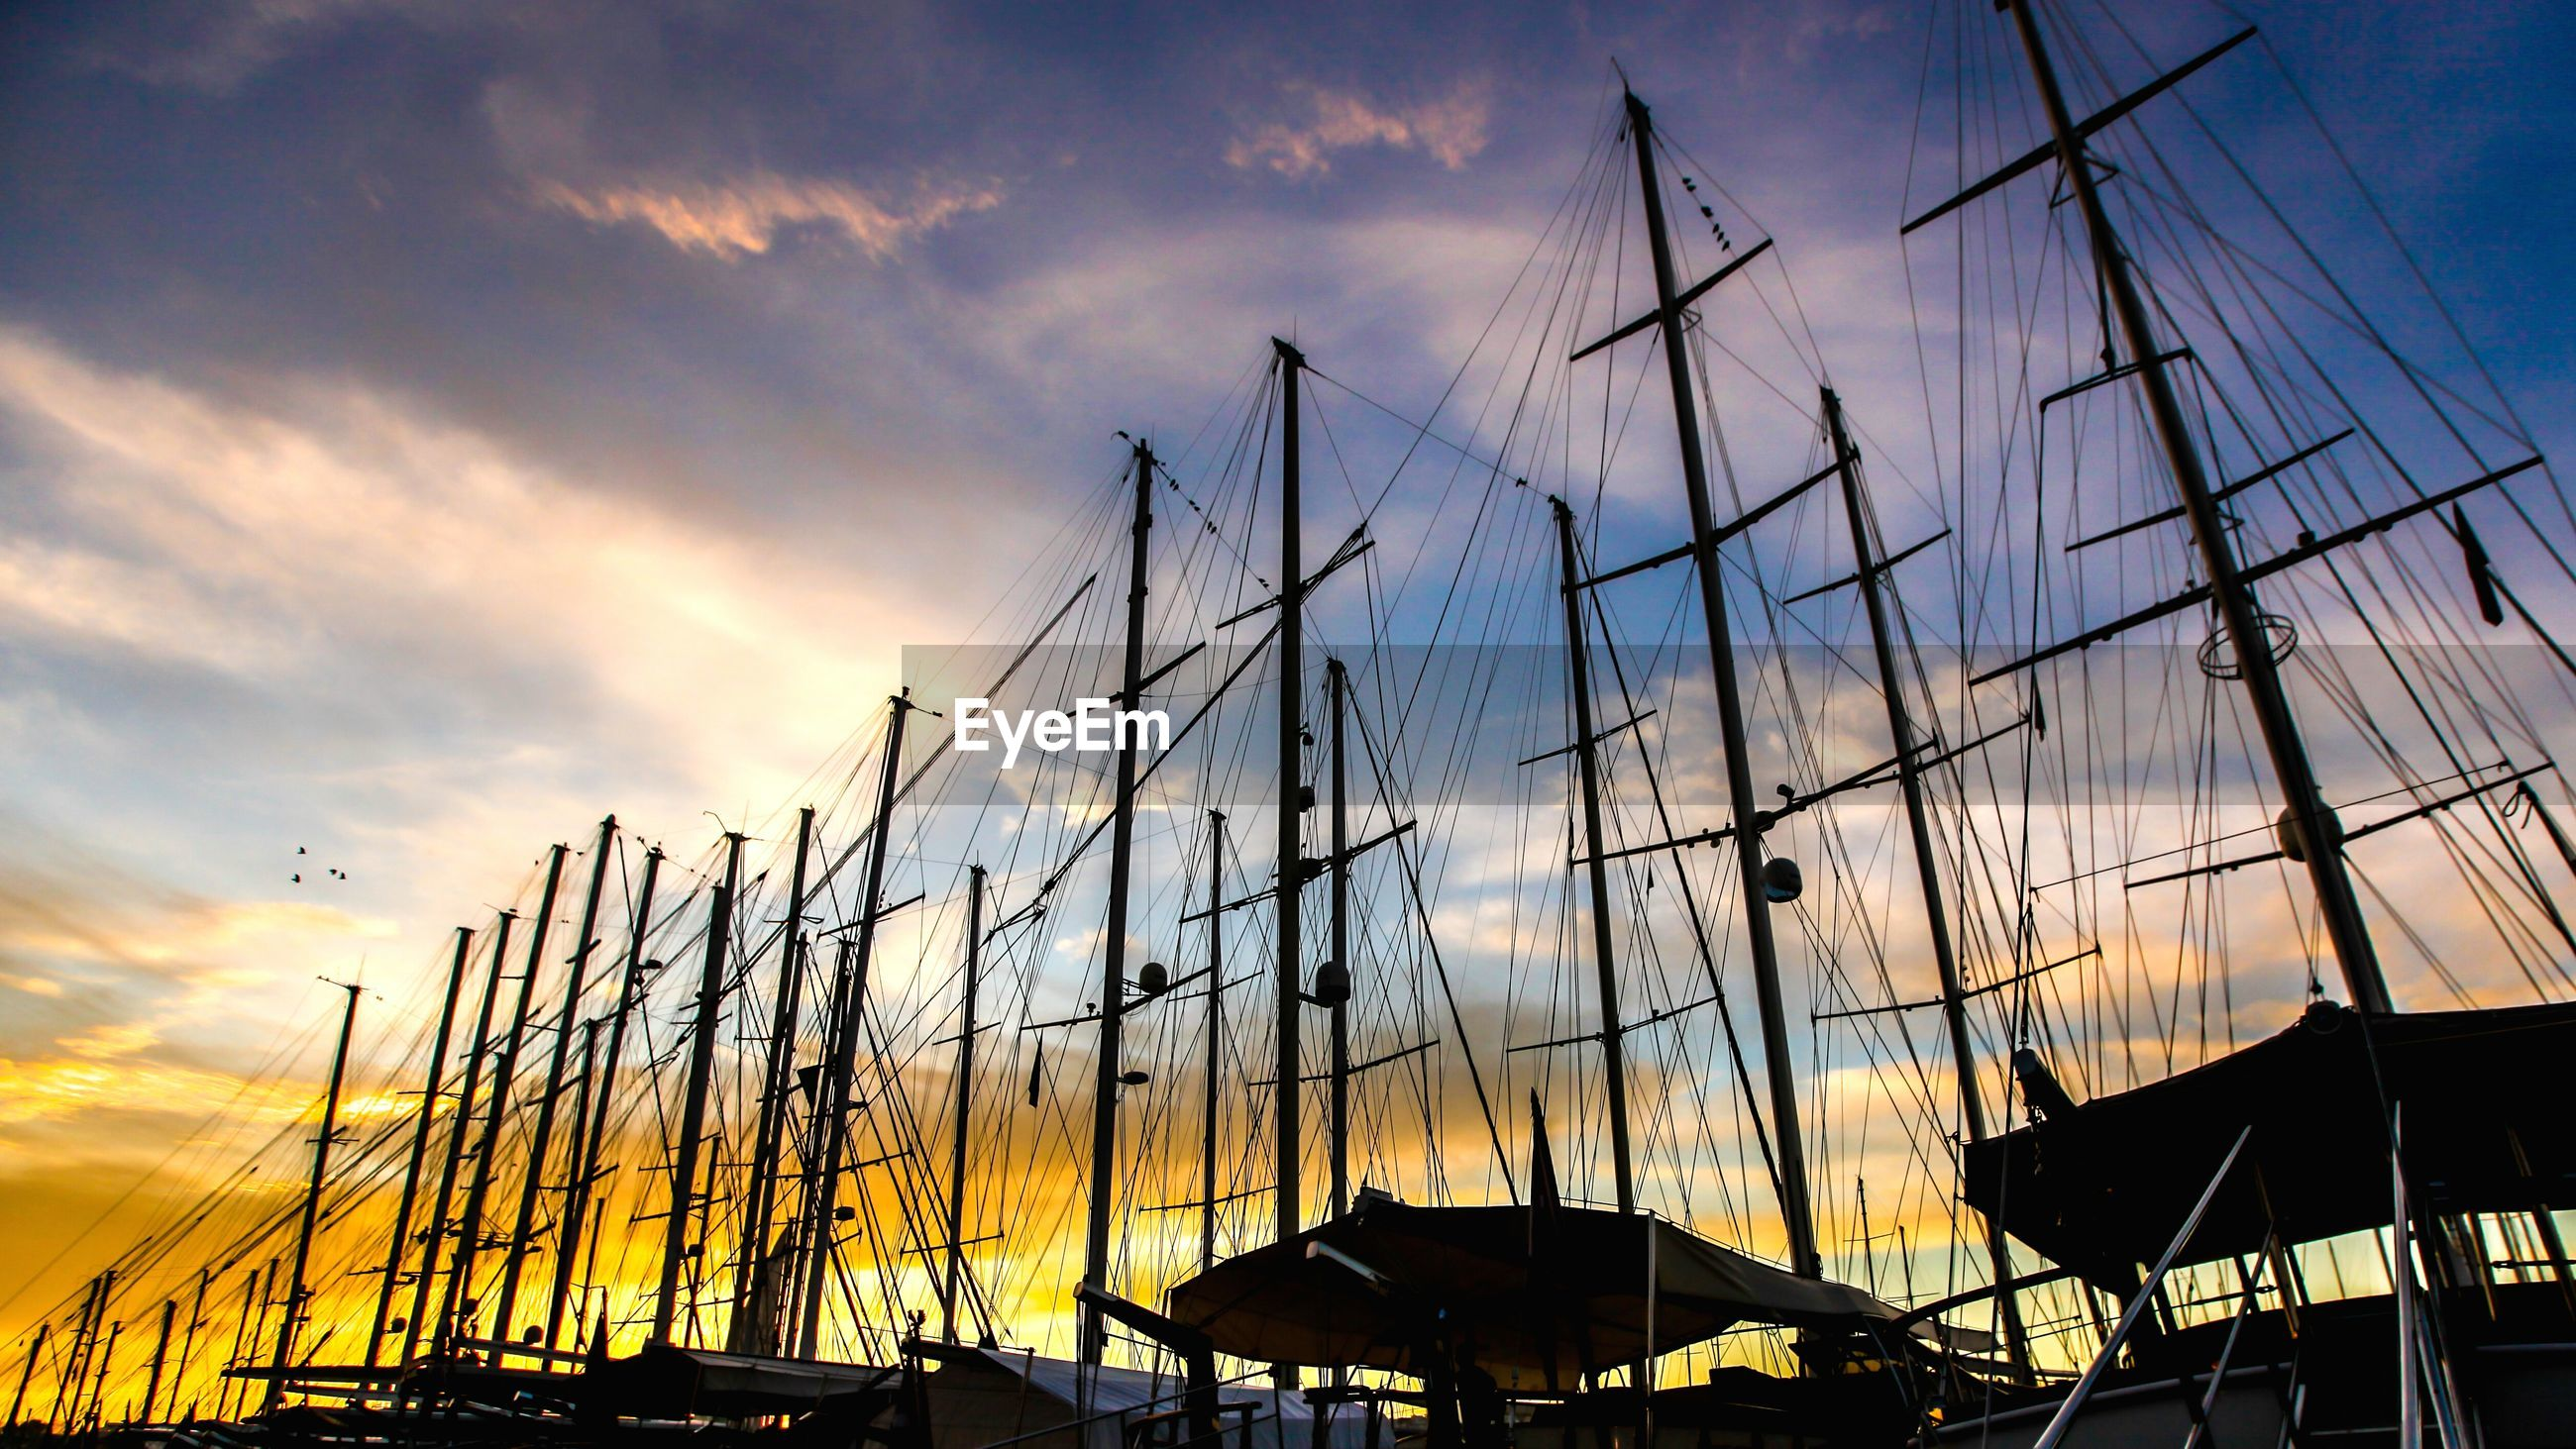 Low angle view of silhouette masts against cloudy sky during sunset